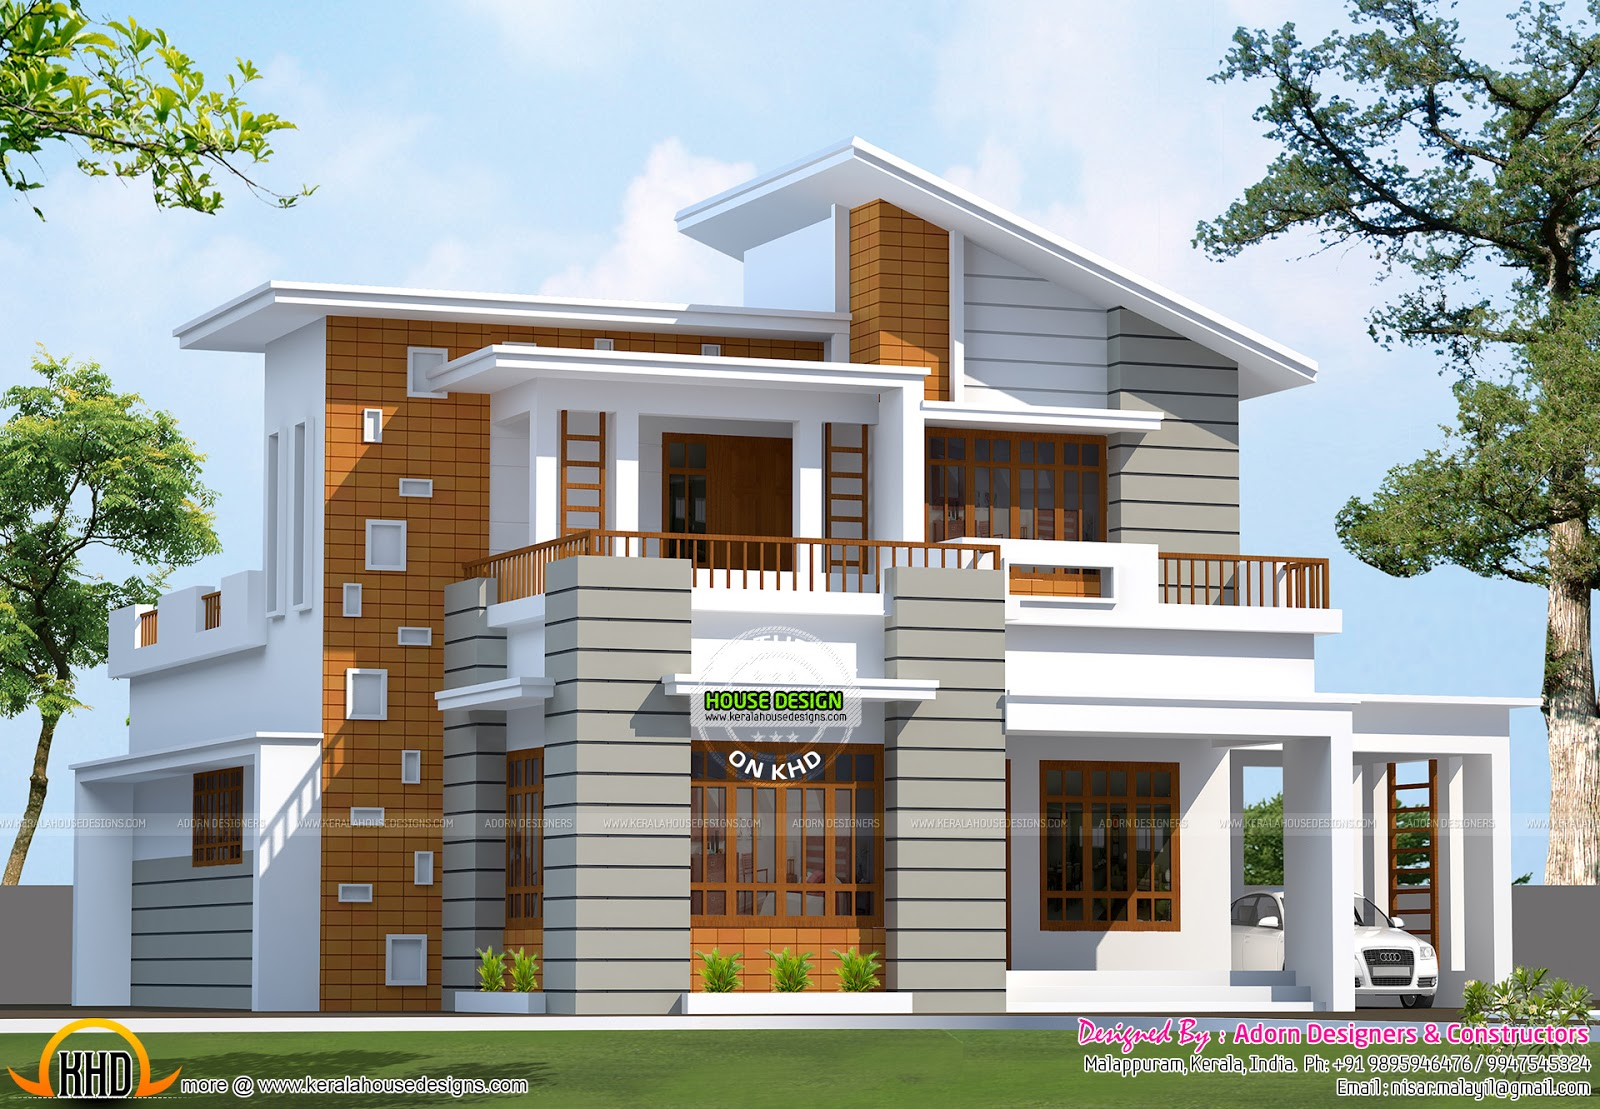 indian house outlook design ForIndian House Outlook Design